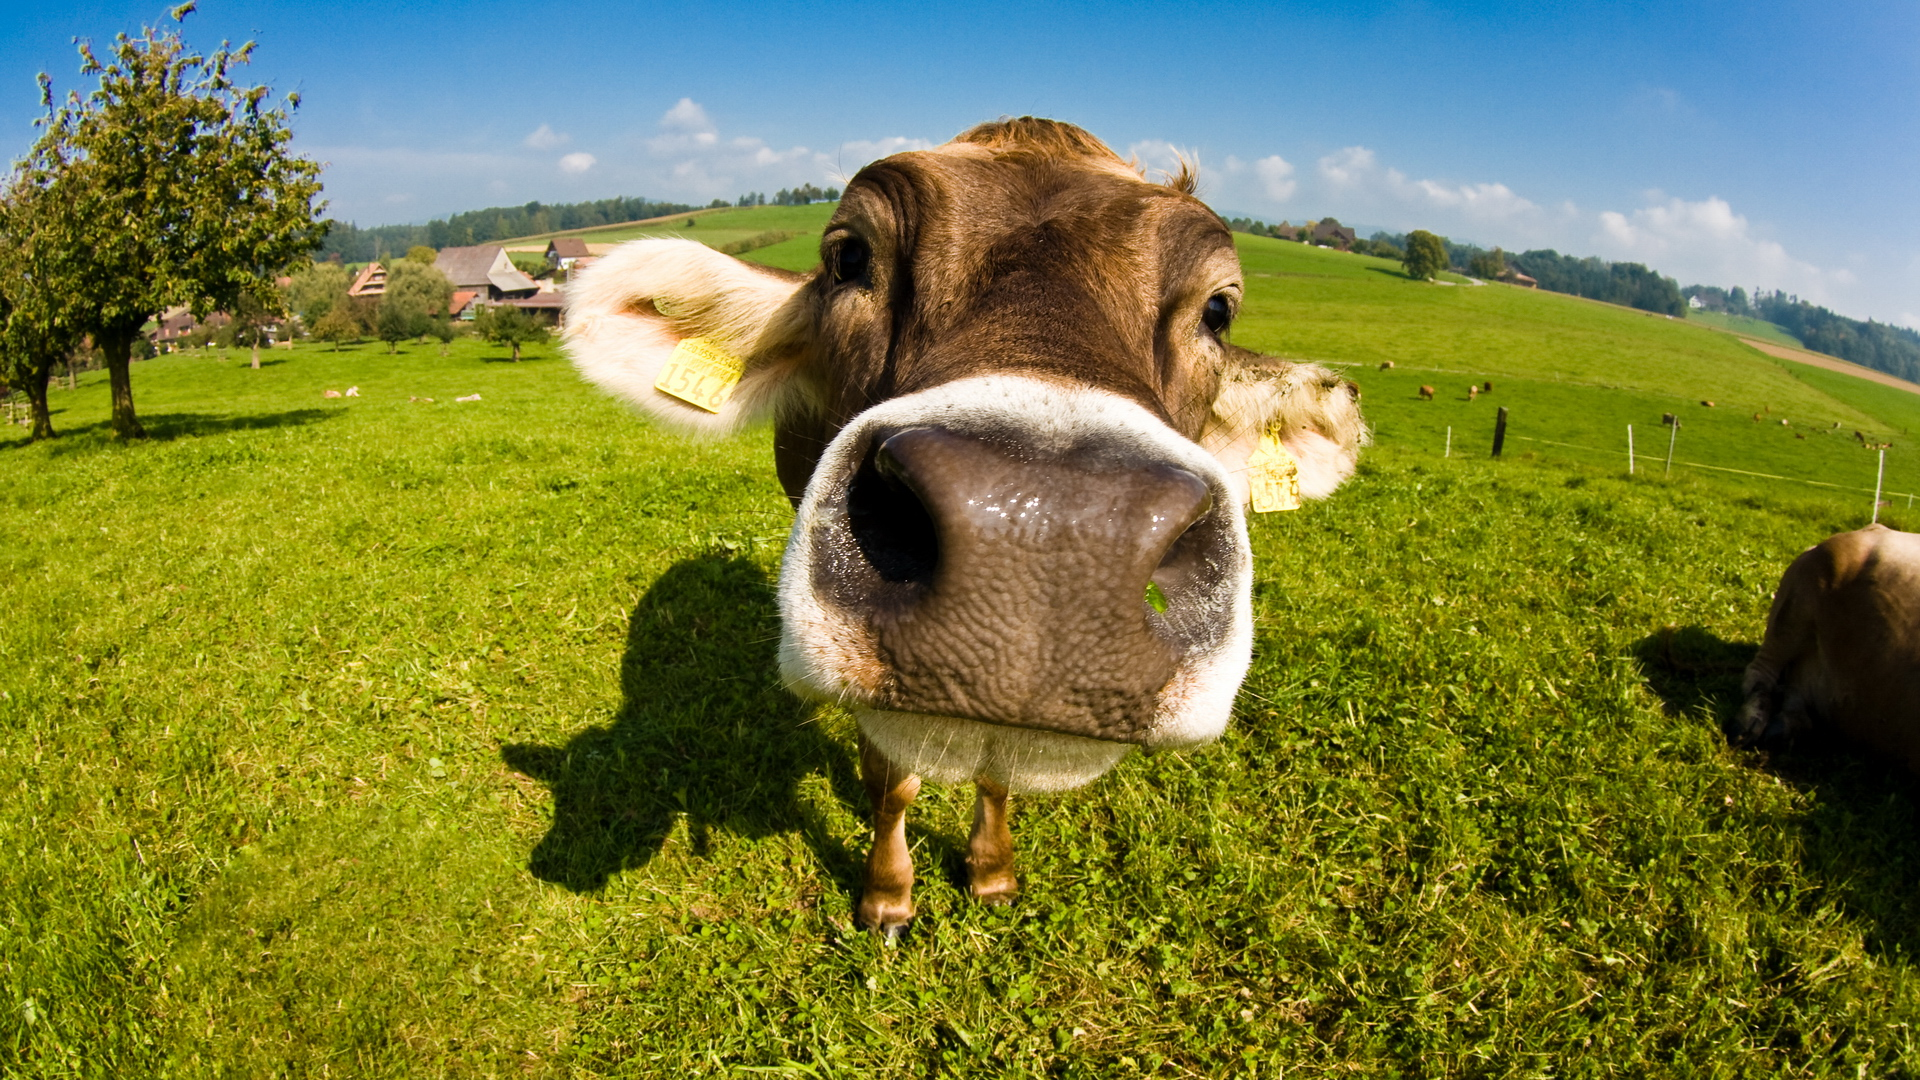 Best HD Wallpaper's Collection: Cows Wallpapers (44) of Cows